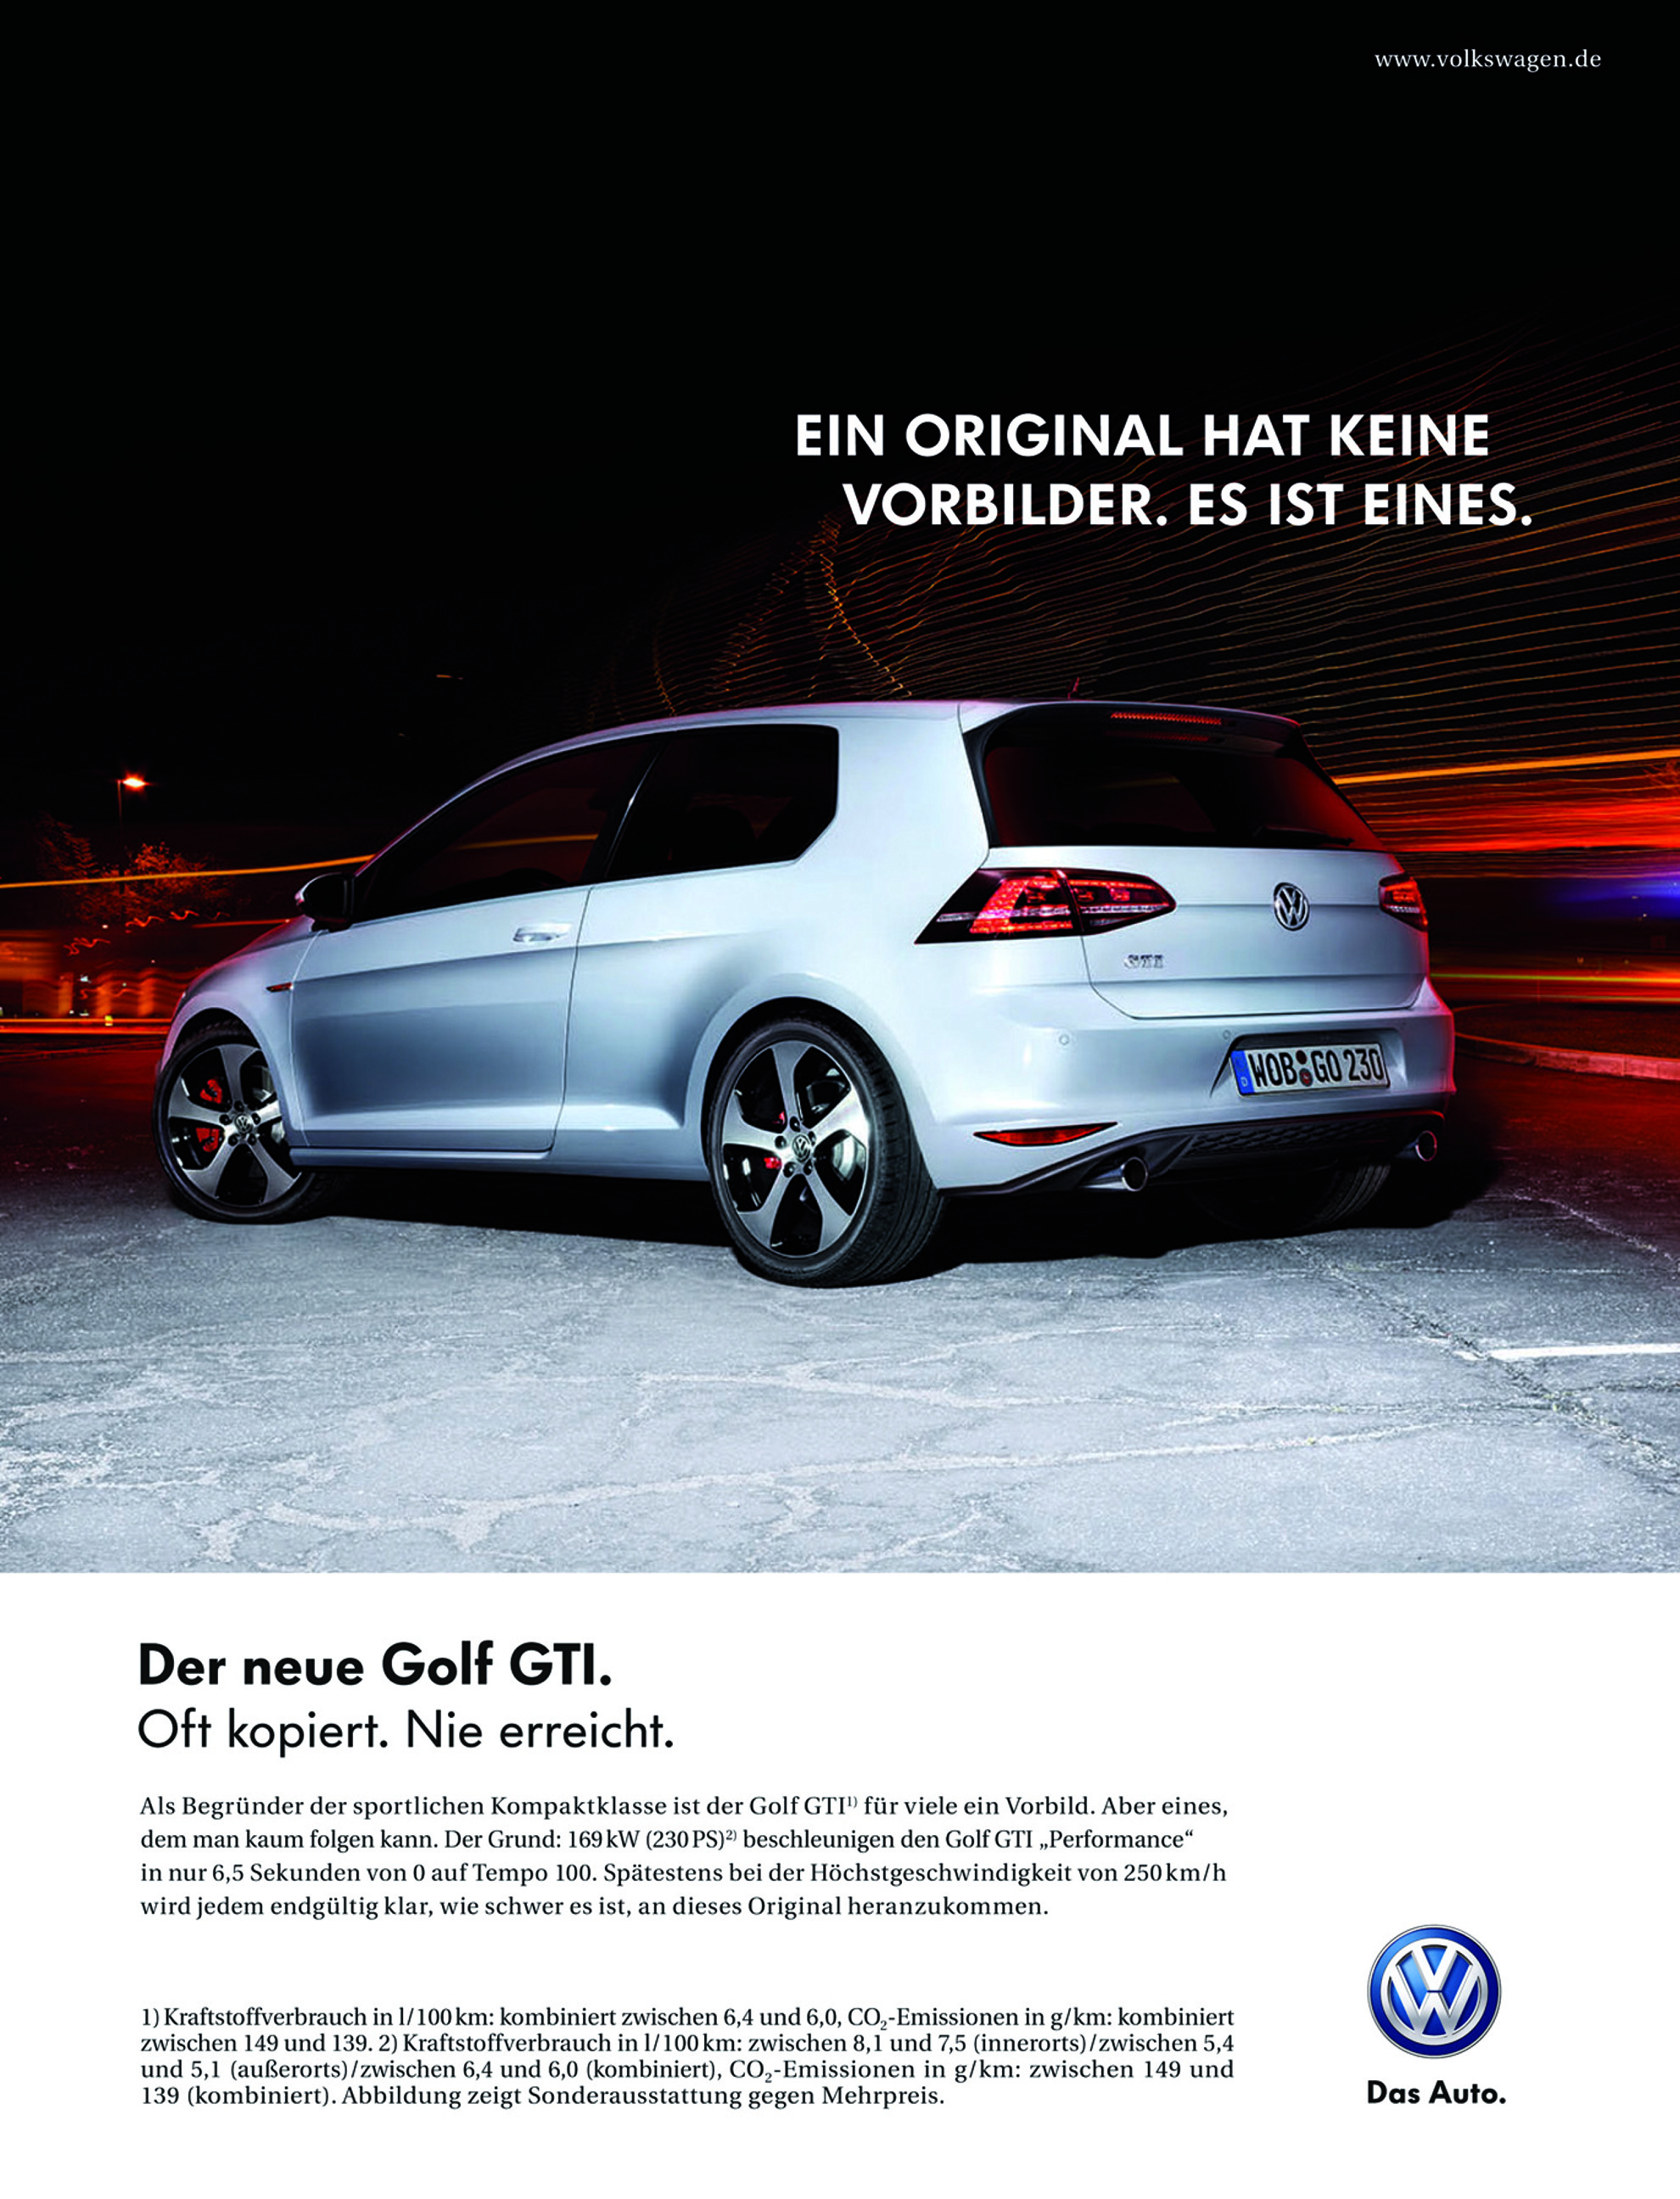 Volkswagen Retains Star Director For New Golf Gti